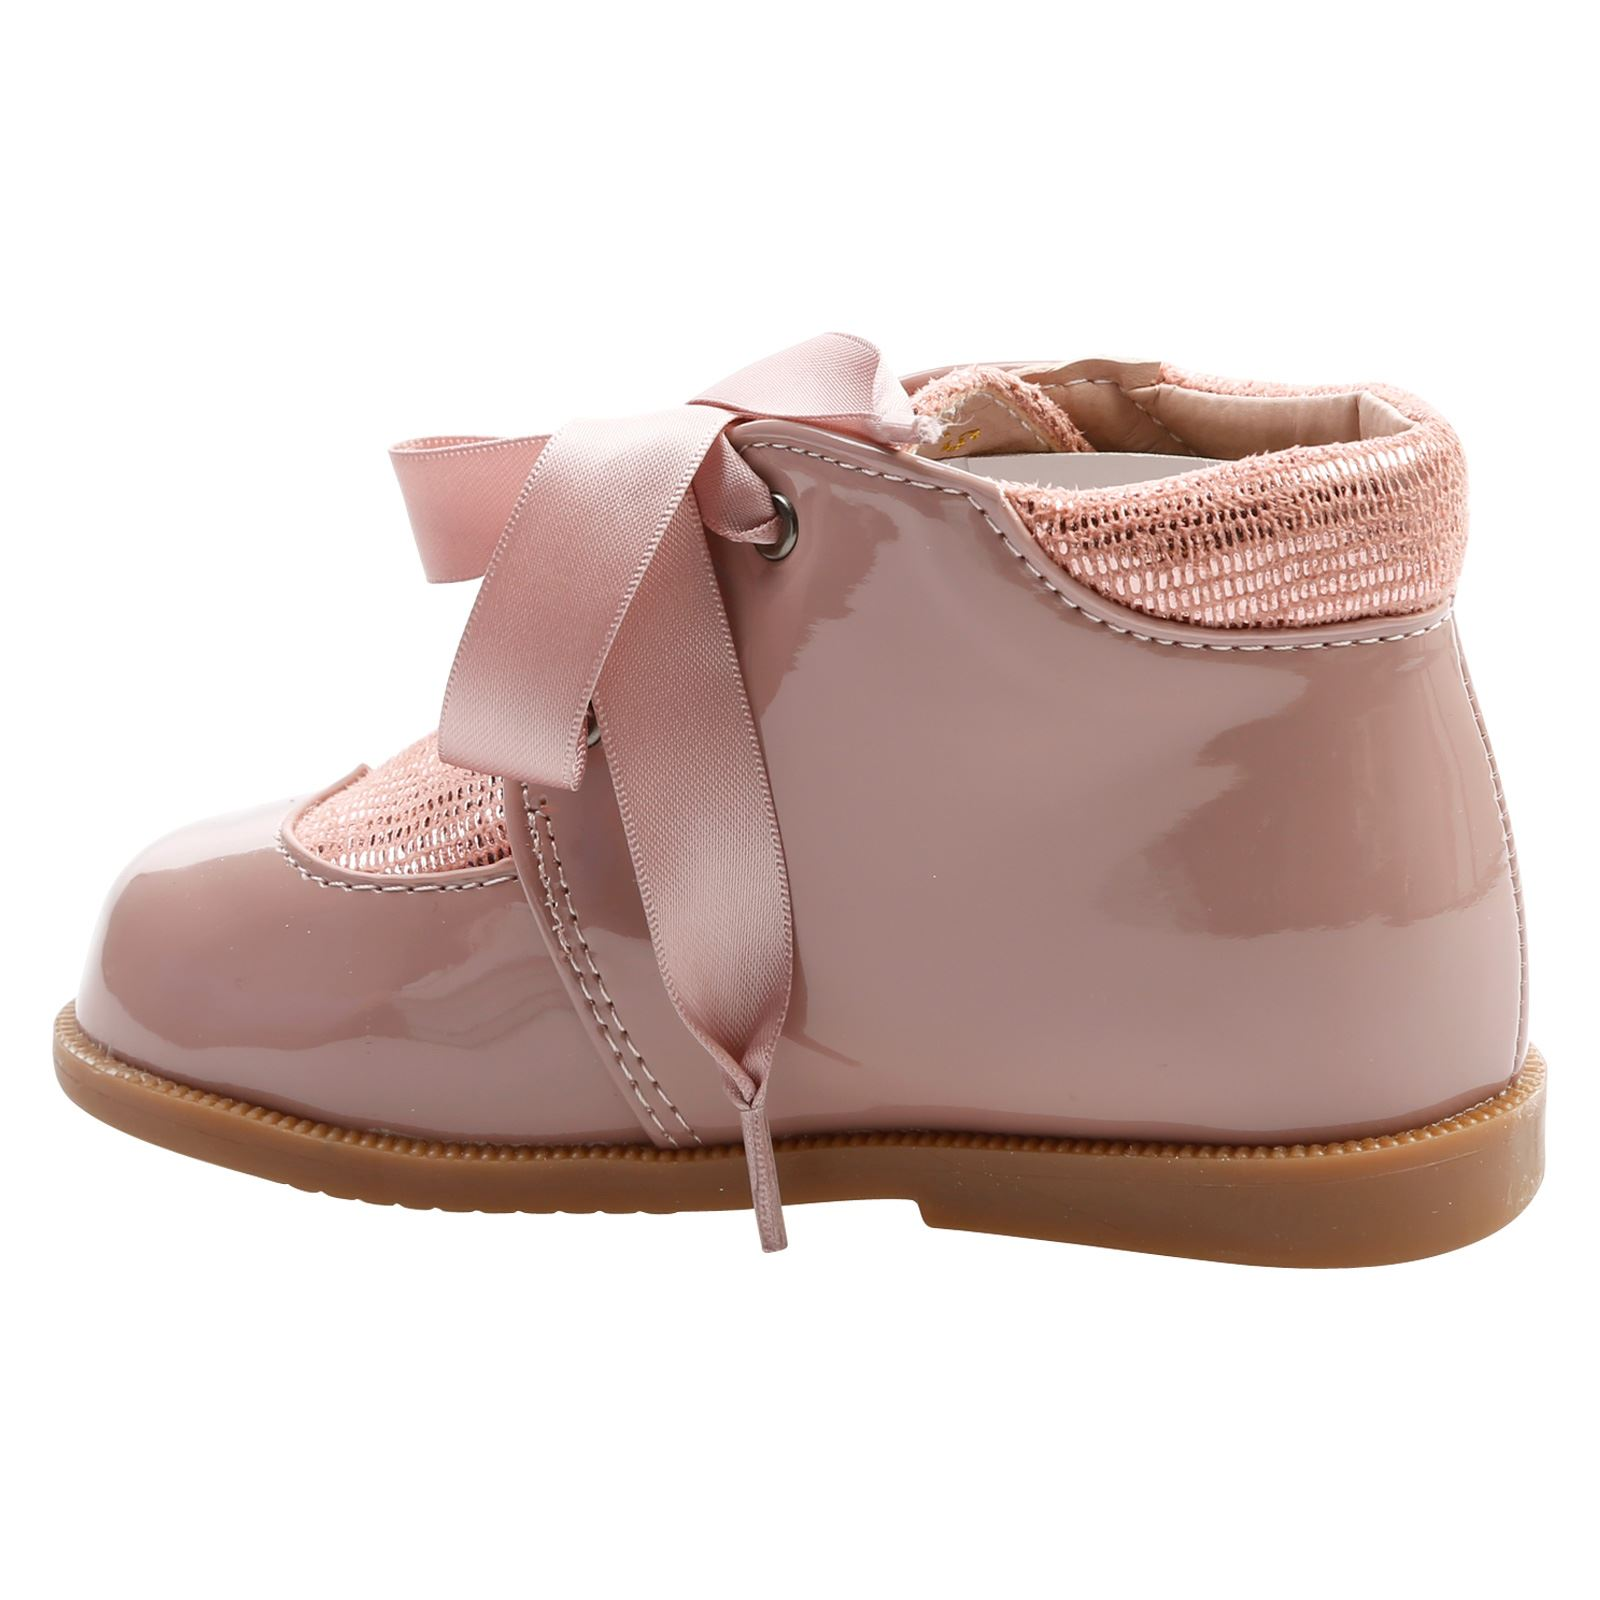 Harper Girls Toddlers Flats Low Heel Satin Ribbon Lace Up Ankle Boots Shoes Size